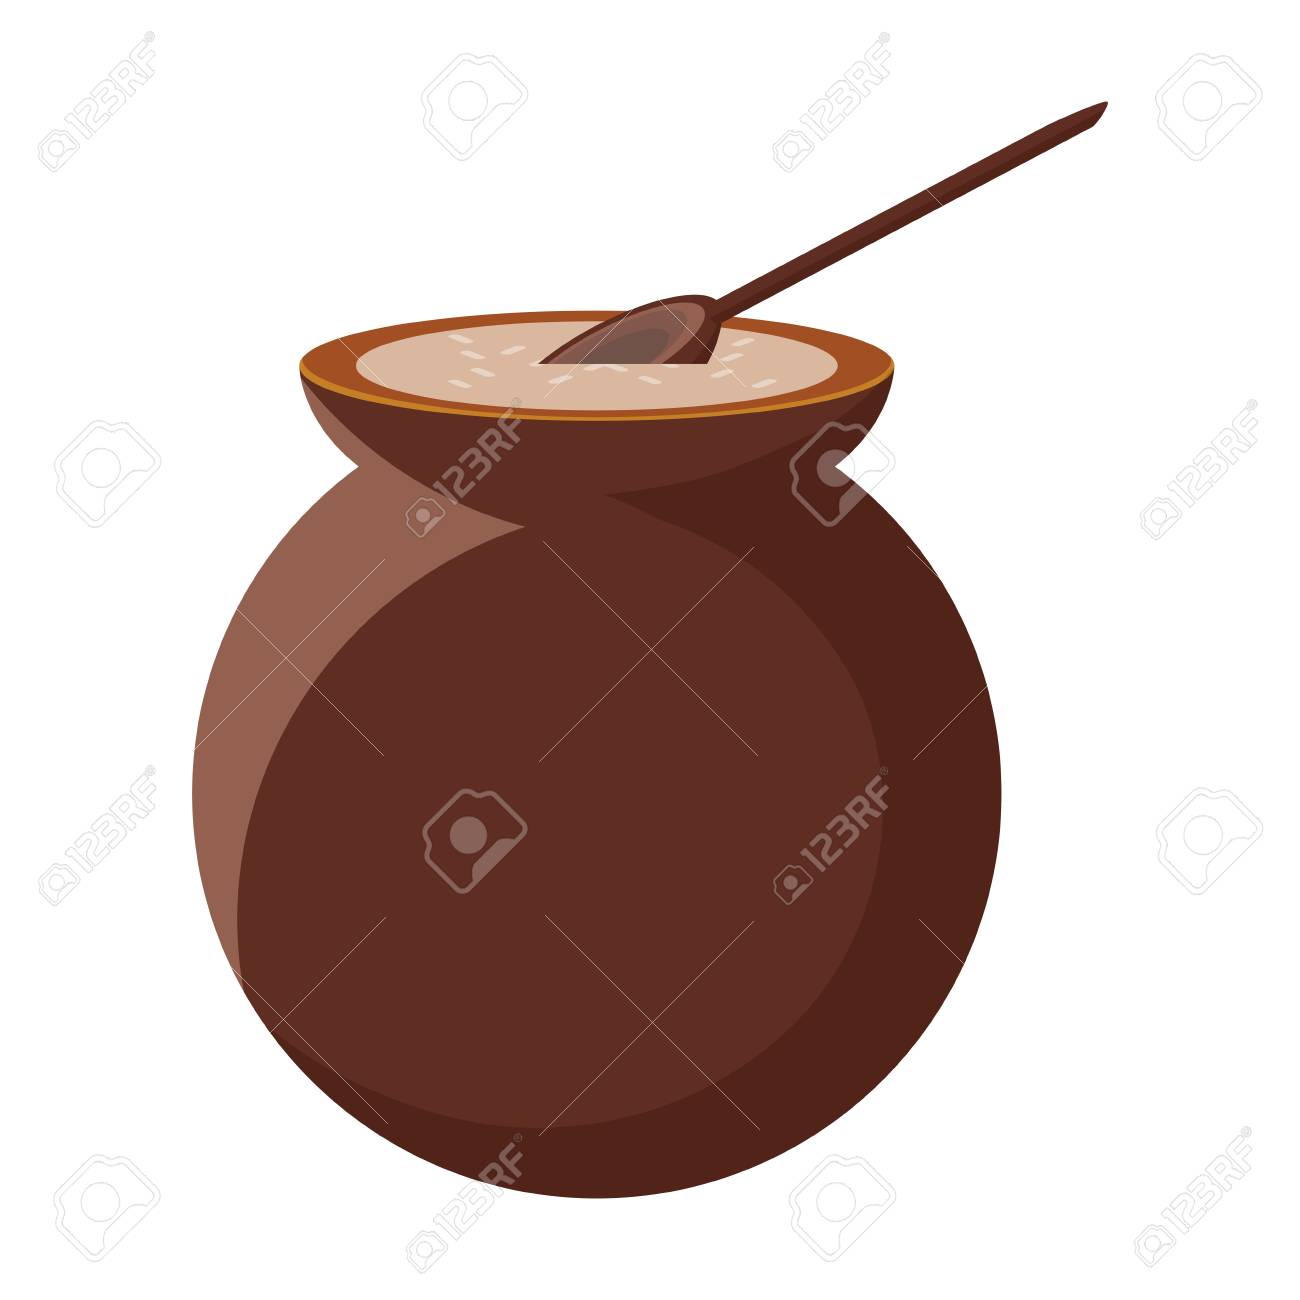 mexican coffee cafe de olla icon over white background, colorful design. vector illustration - 99248117